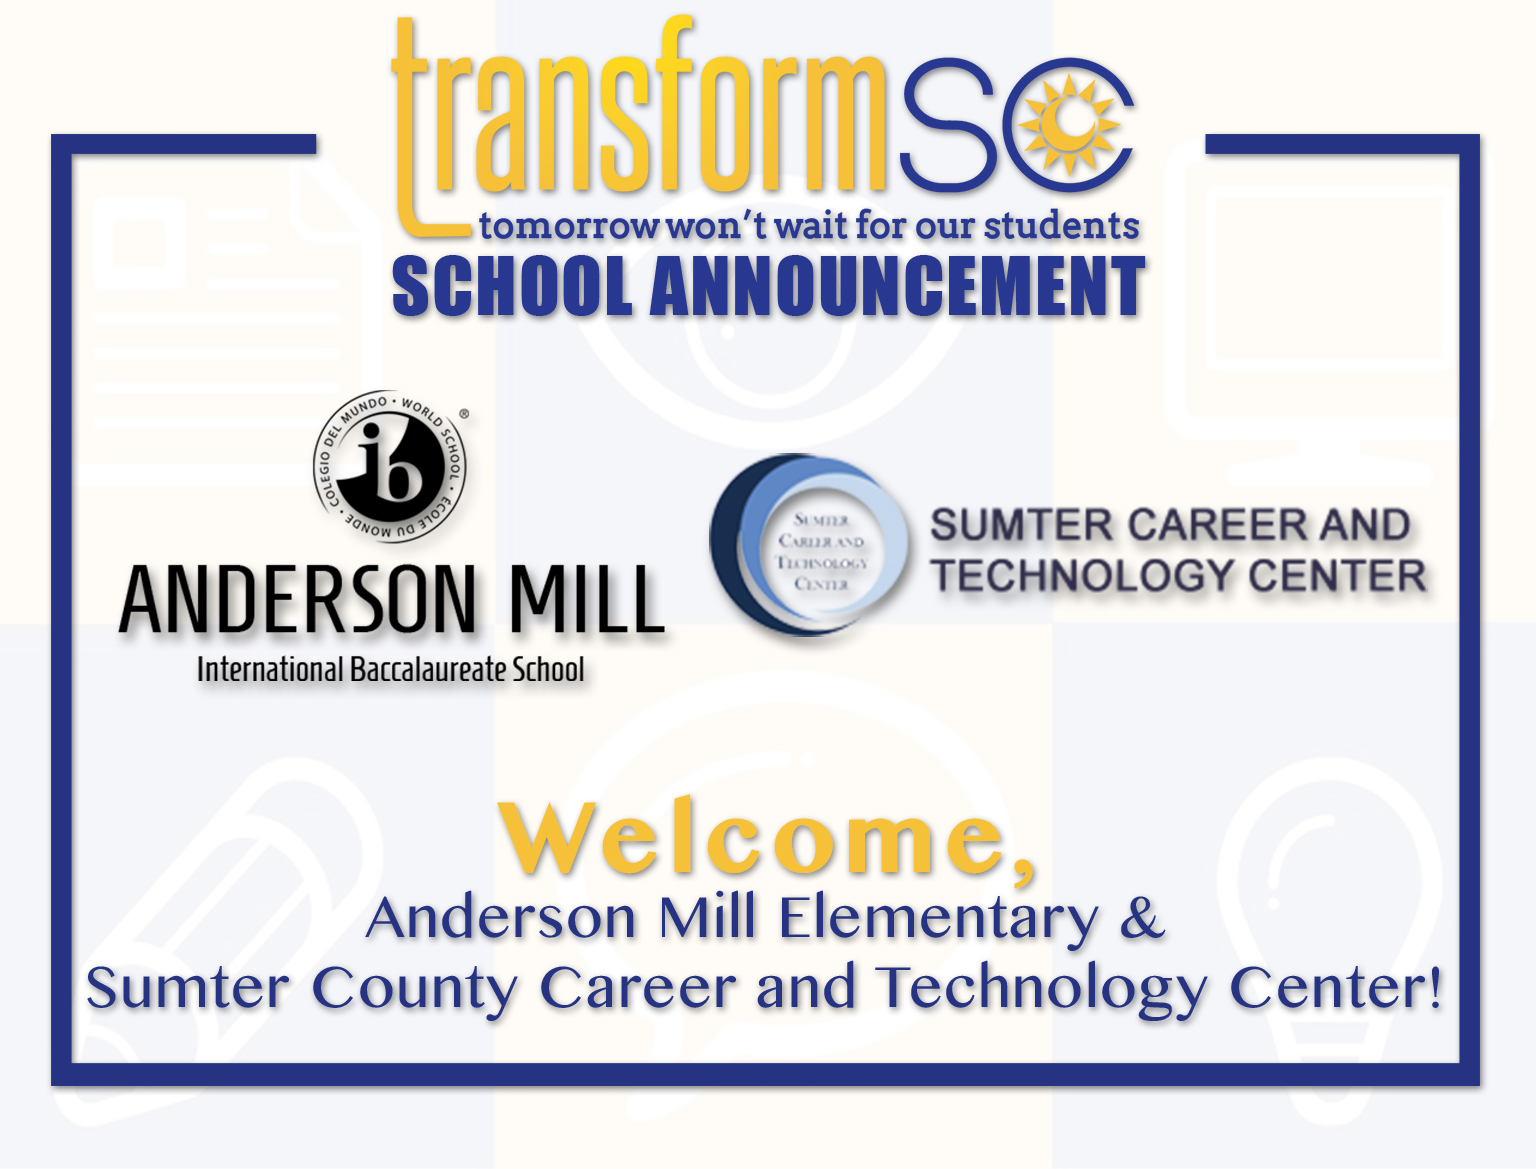 TransformSC Announces Anderson Mill Elementary School And